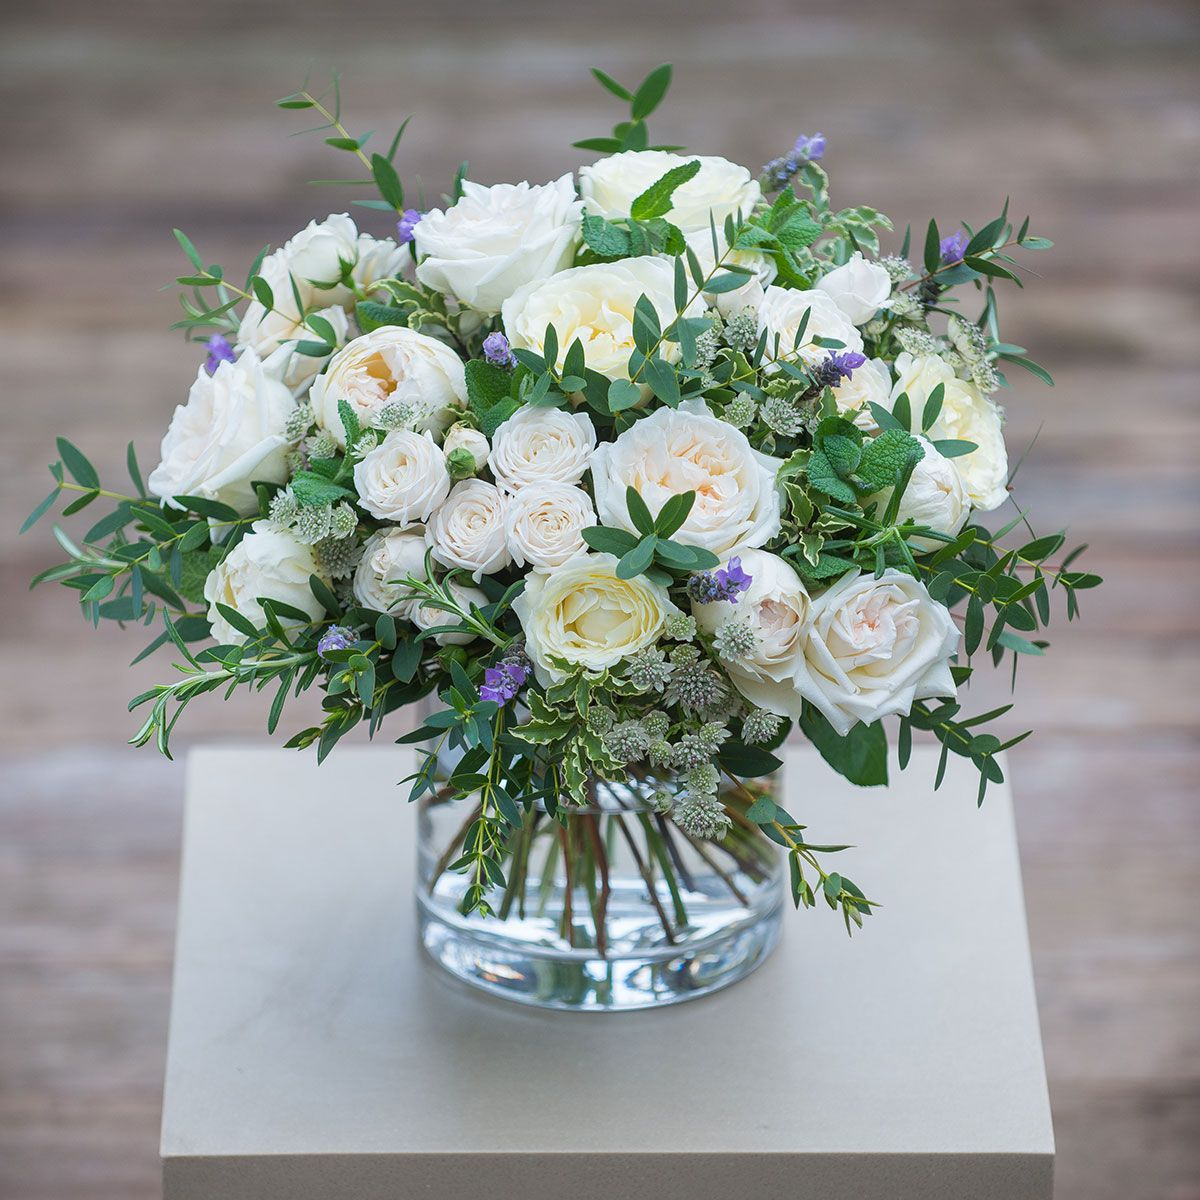 Sympathy Bouquet - From: